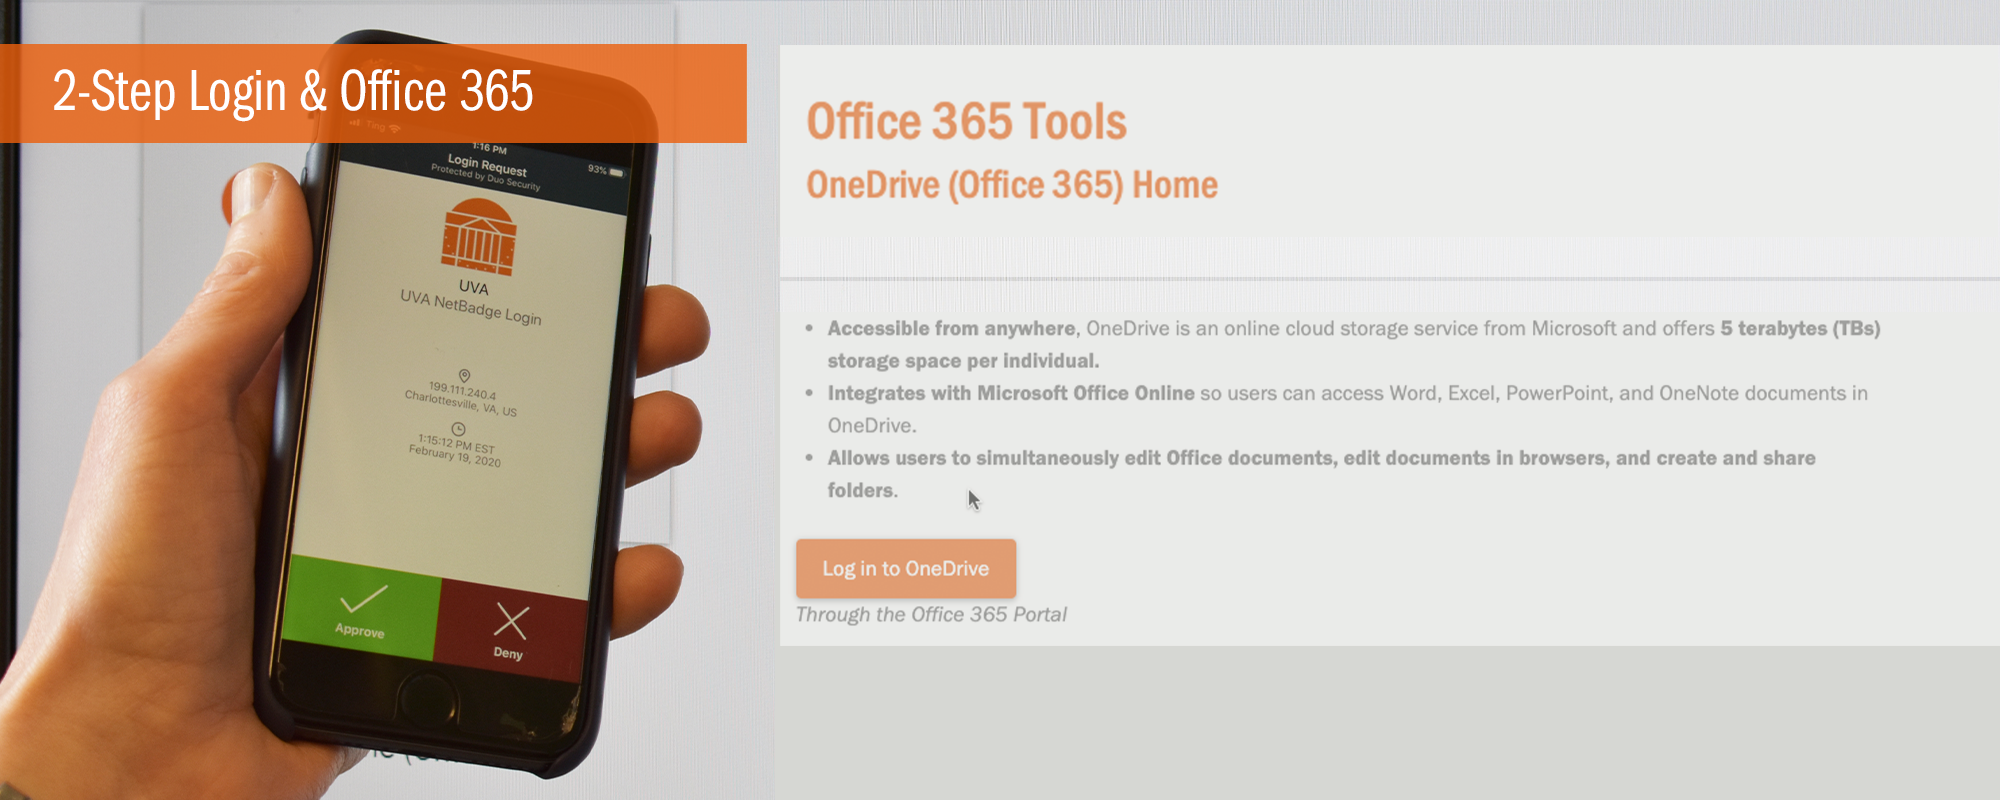 2-Step Login and Office 365